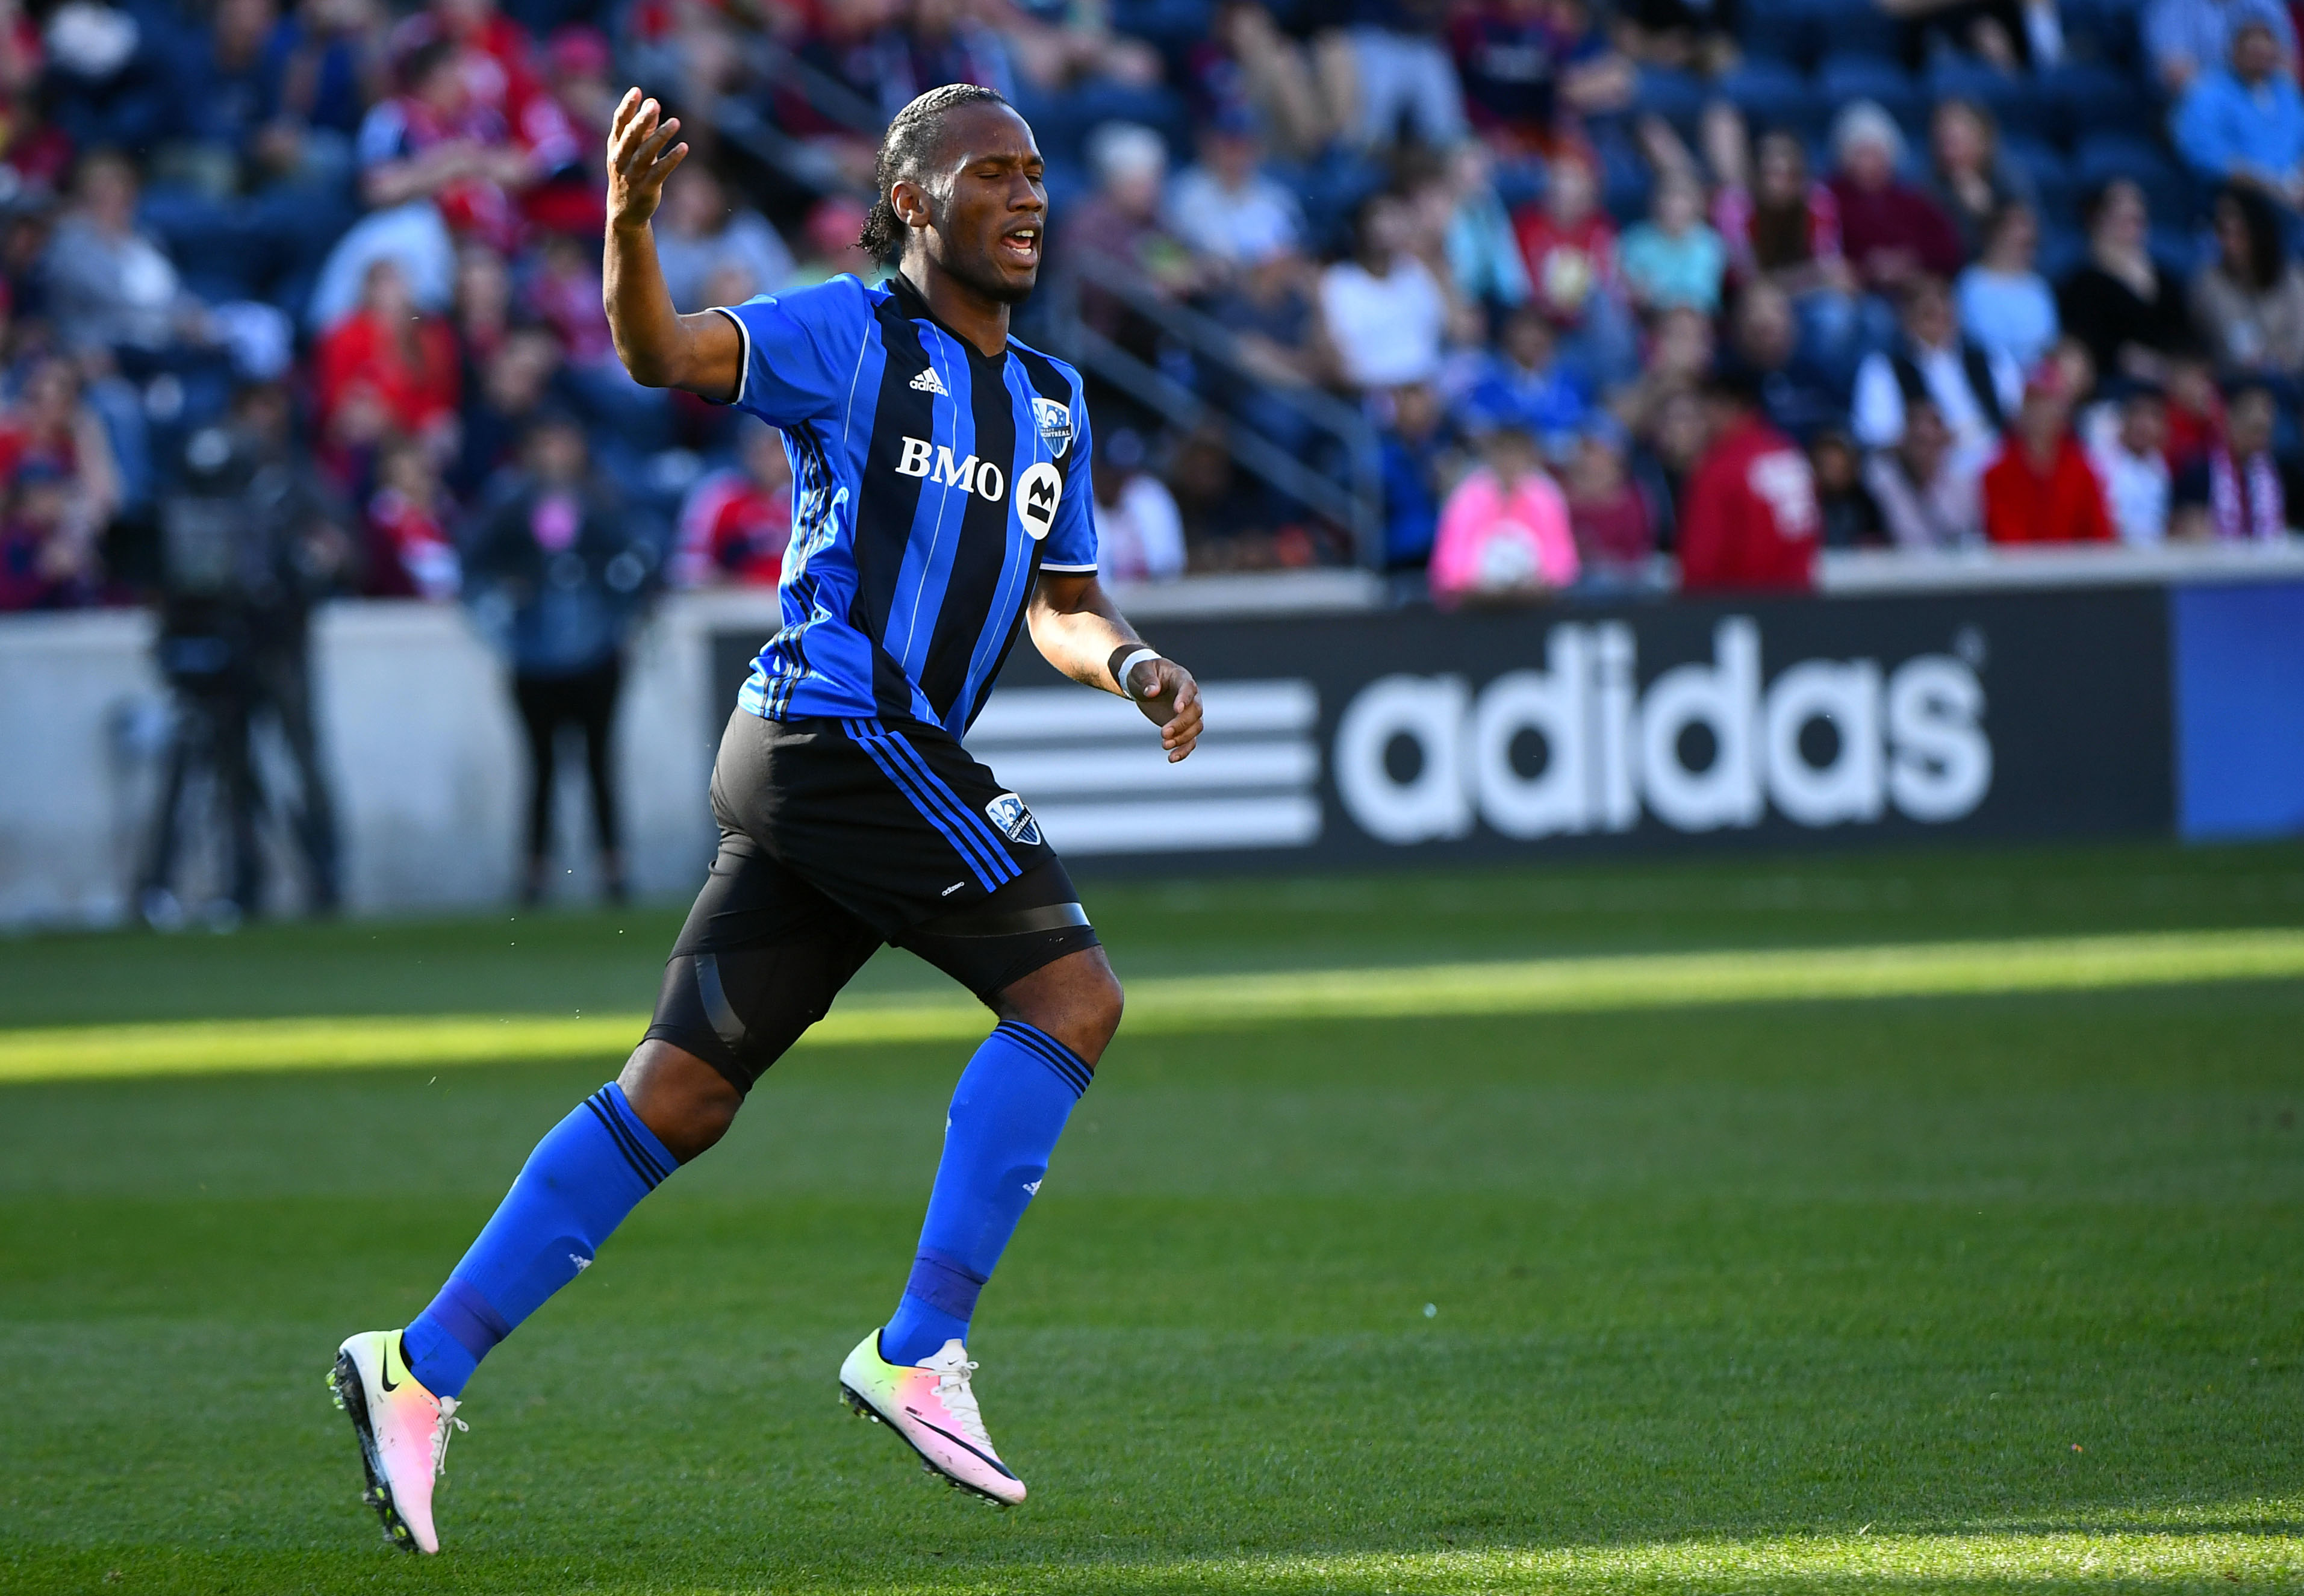 The return of Didier Drogba bodes well for the Impact and sows fear in the hearts of Eastern rivals.